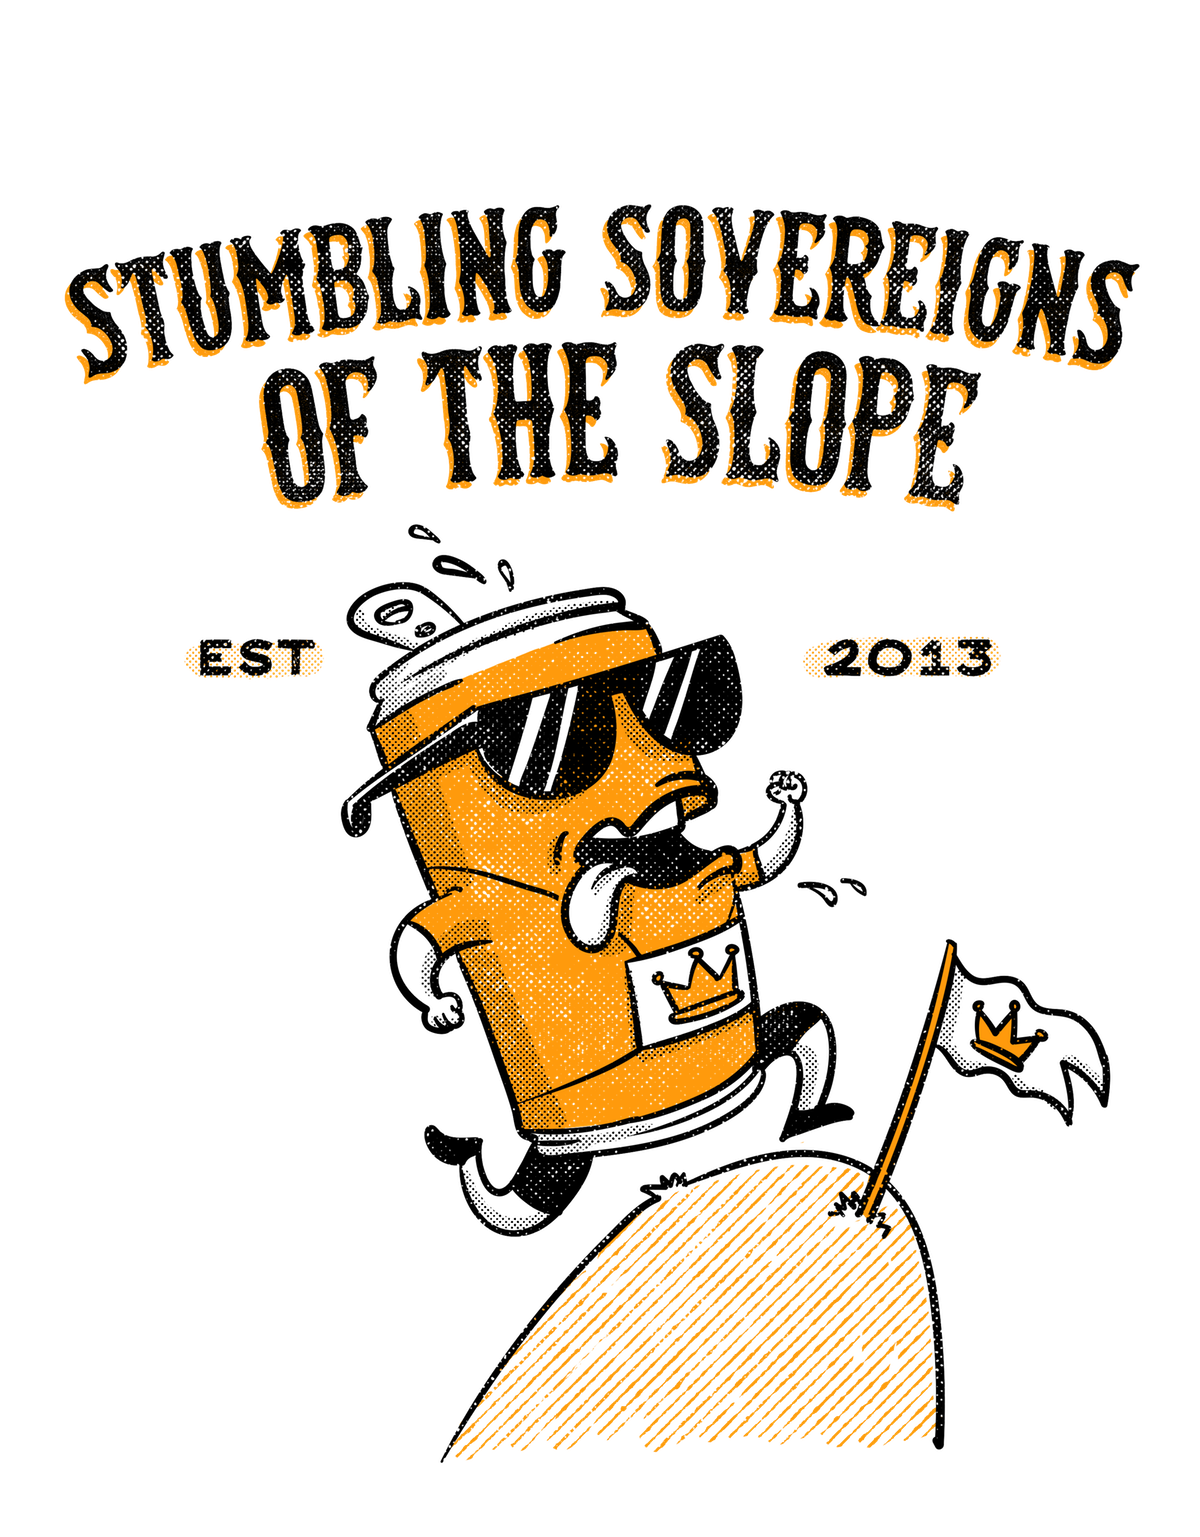 Stumbling Sovereigns of the Slope